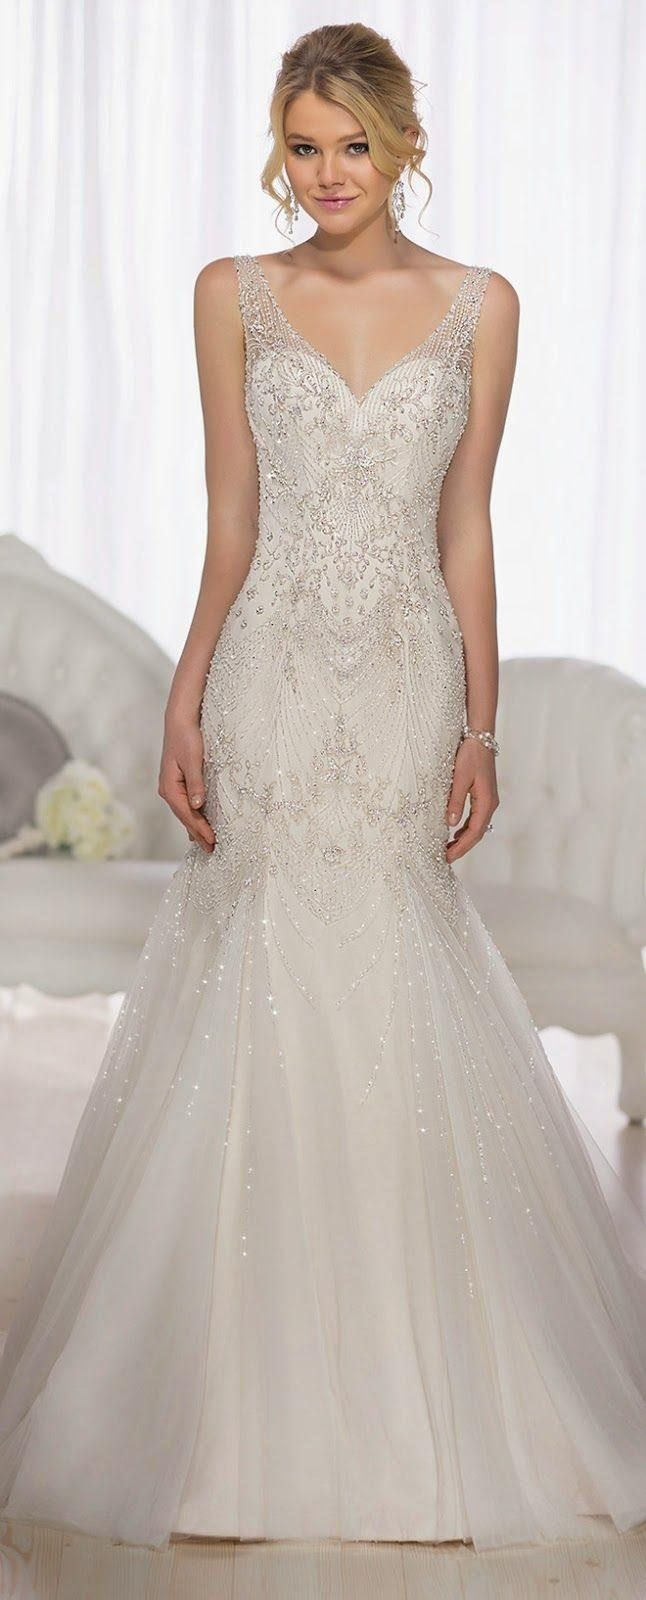 Featured Wedding Dress: Essence of Australia